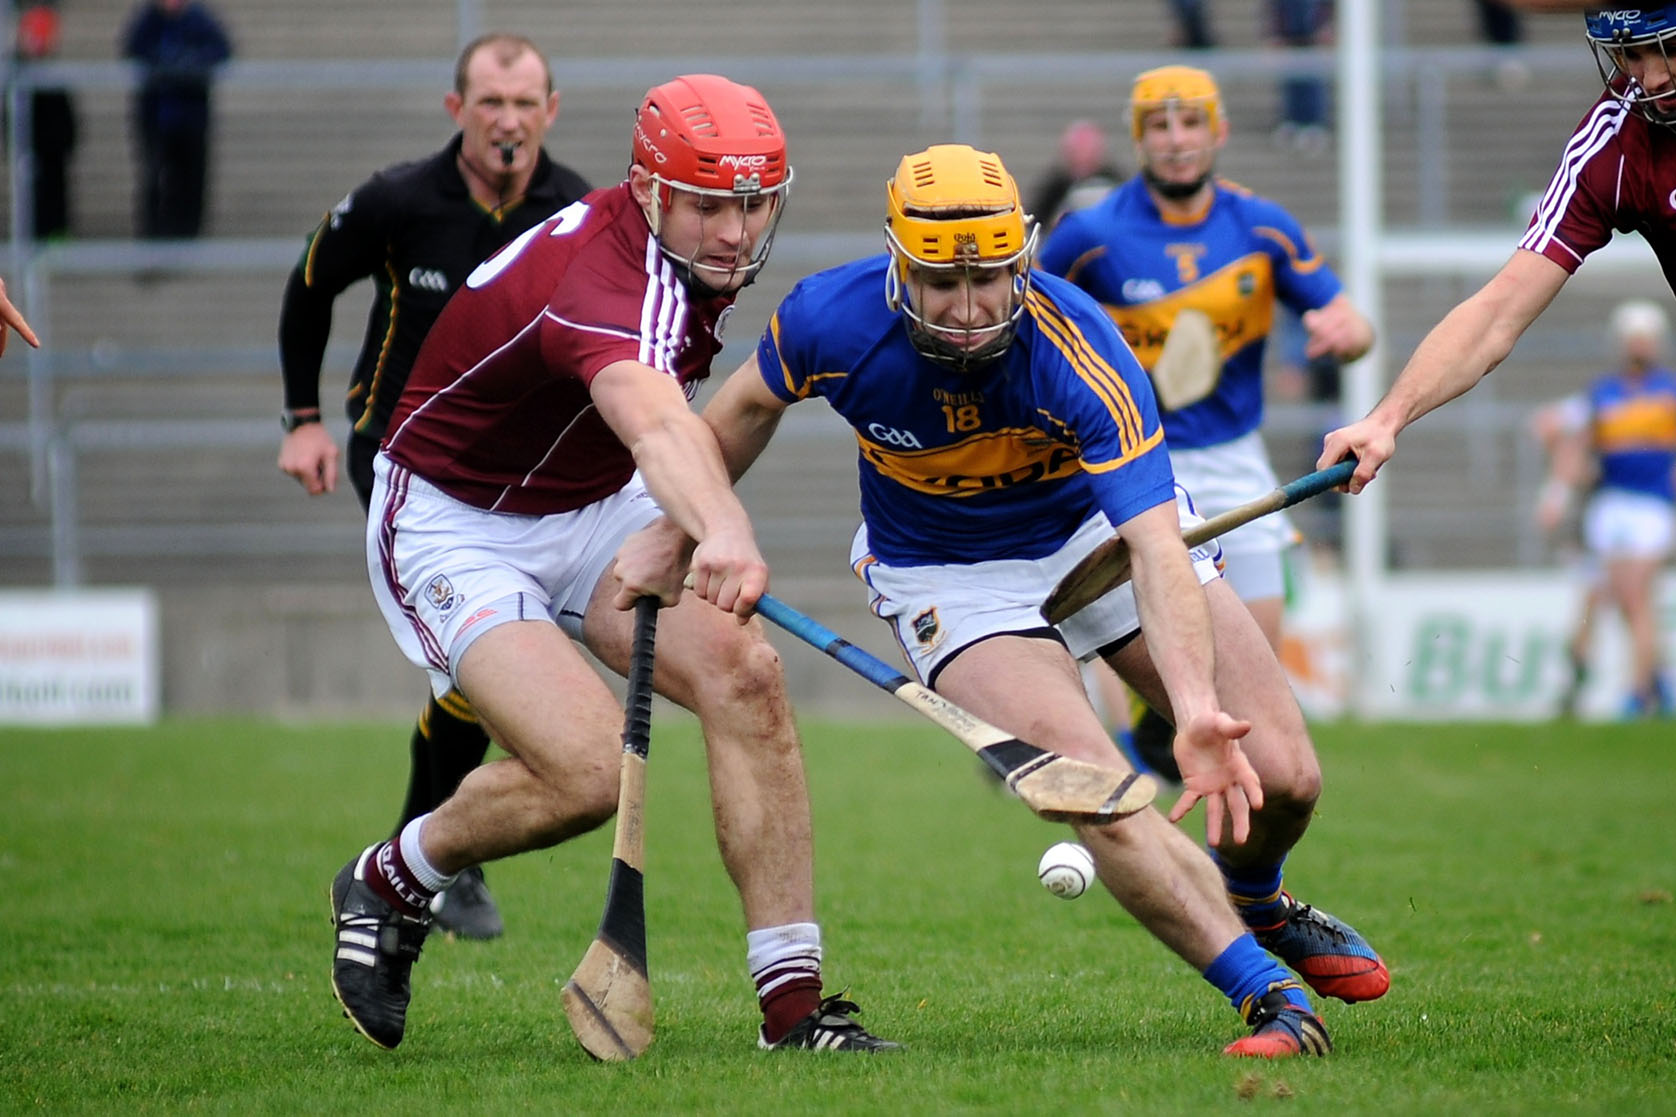 Hurling match in Ireland